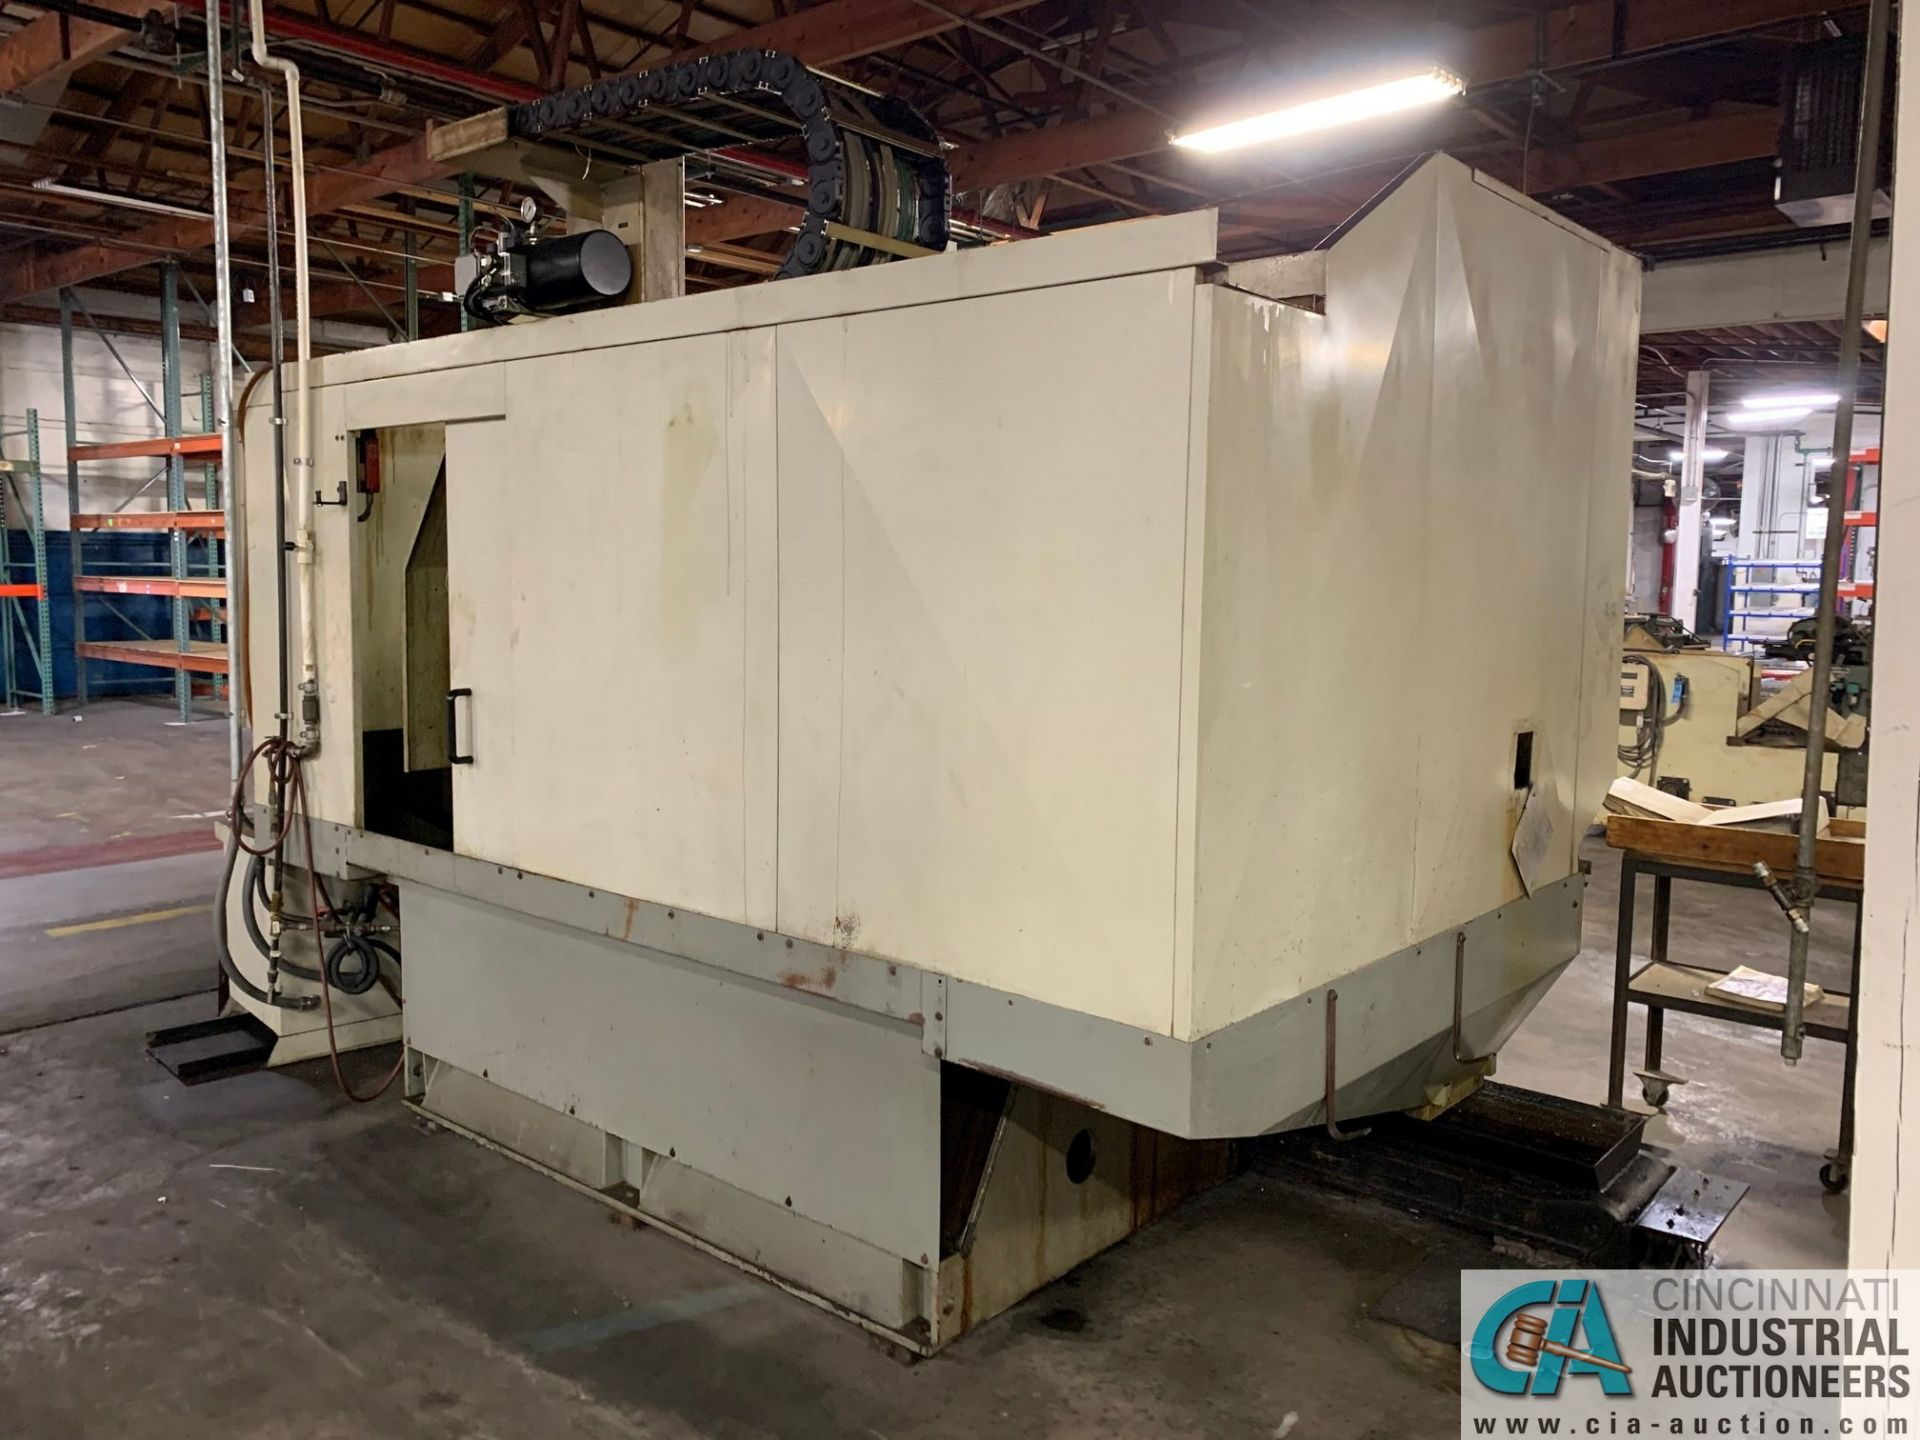 MONARCH UNISIGN TYPE UNIVERS 4 ZONALL 4 CNC VERTICAL MACHINING CENTER; S/N 99Z403, NO. 4293, - Image 13 of 13